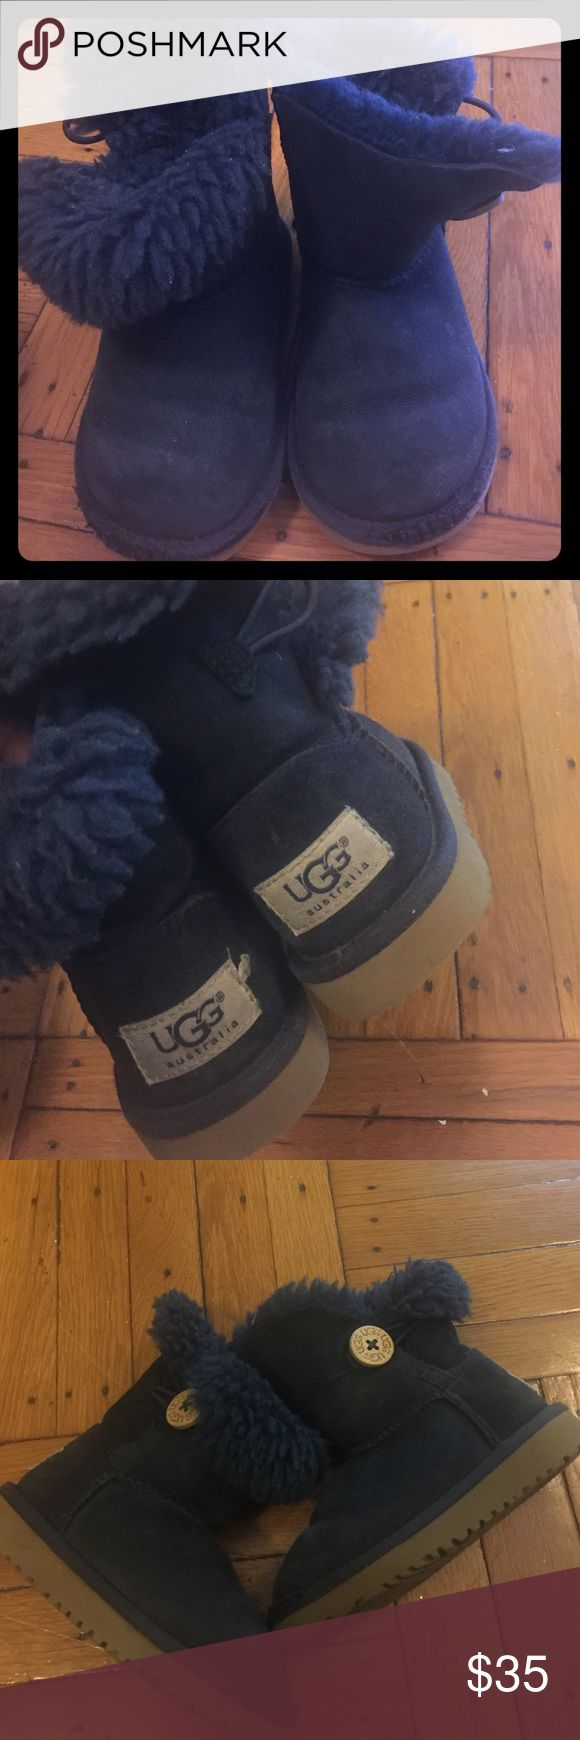 Kids navy blue uggs Kids navy blue uggs. Still in good condition but  has some scraps in the front from my daughter playing on her knees all day! Price to go! UGG Shoes Boots